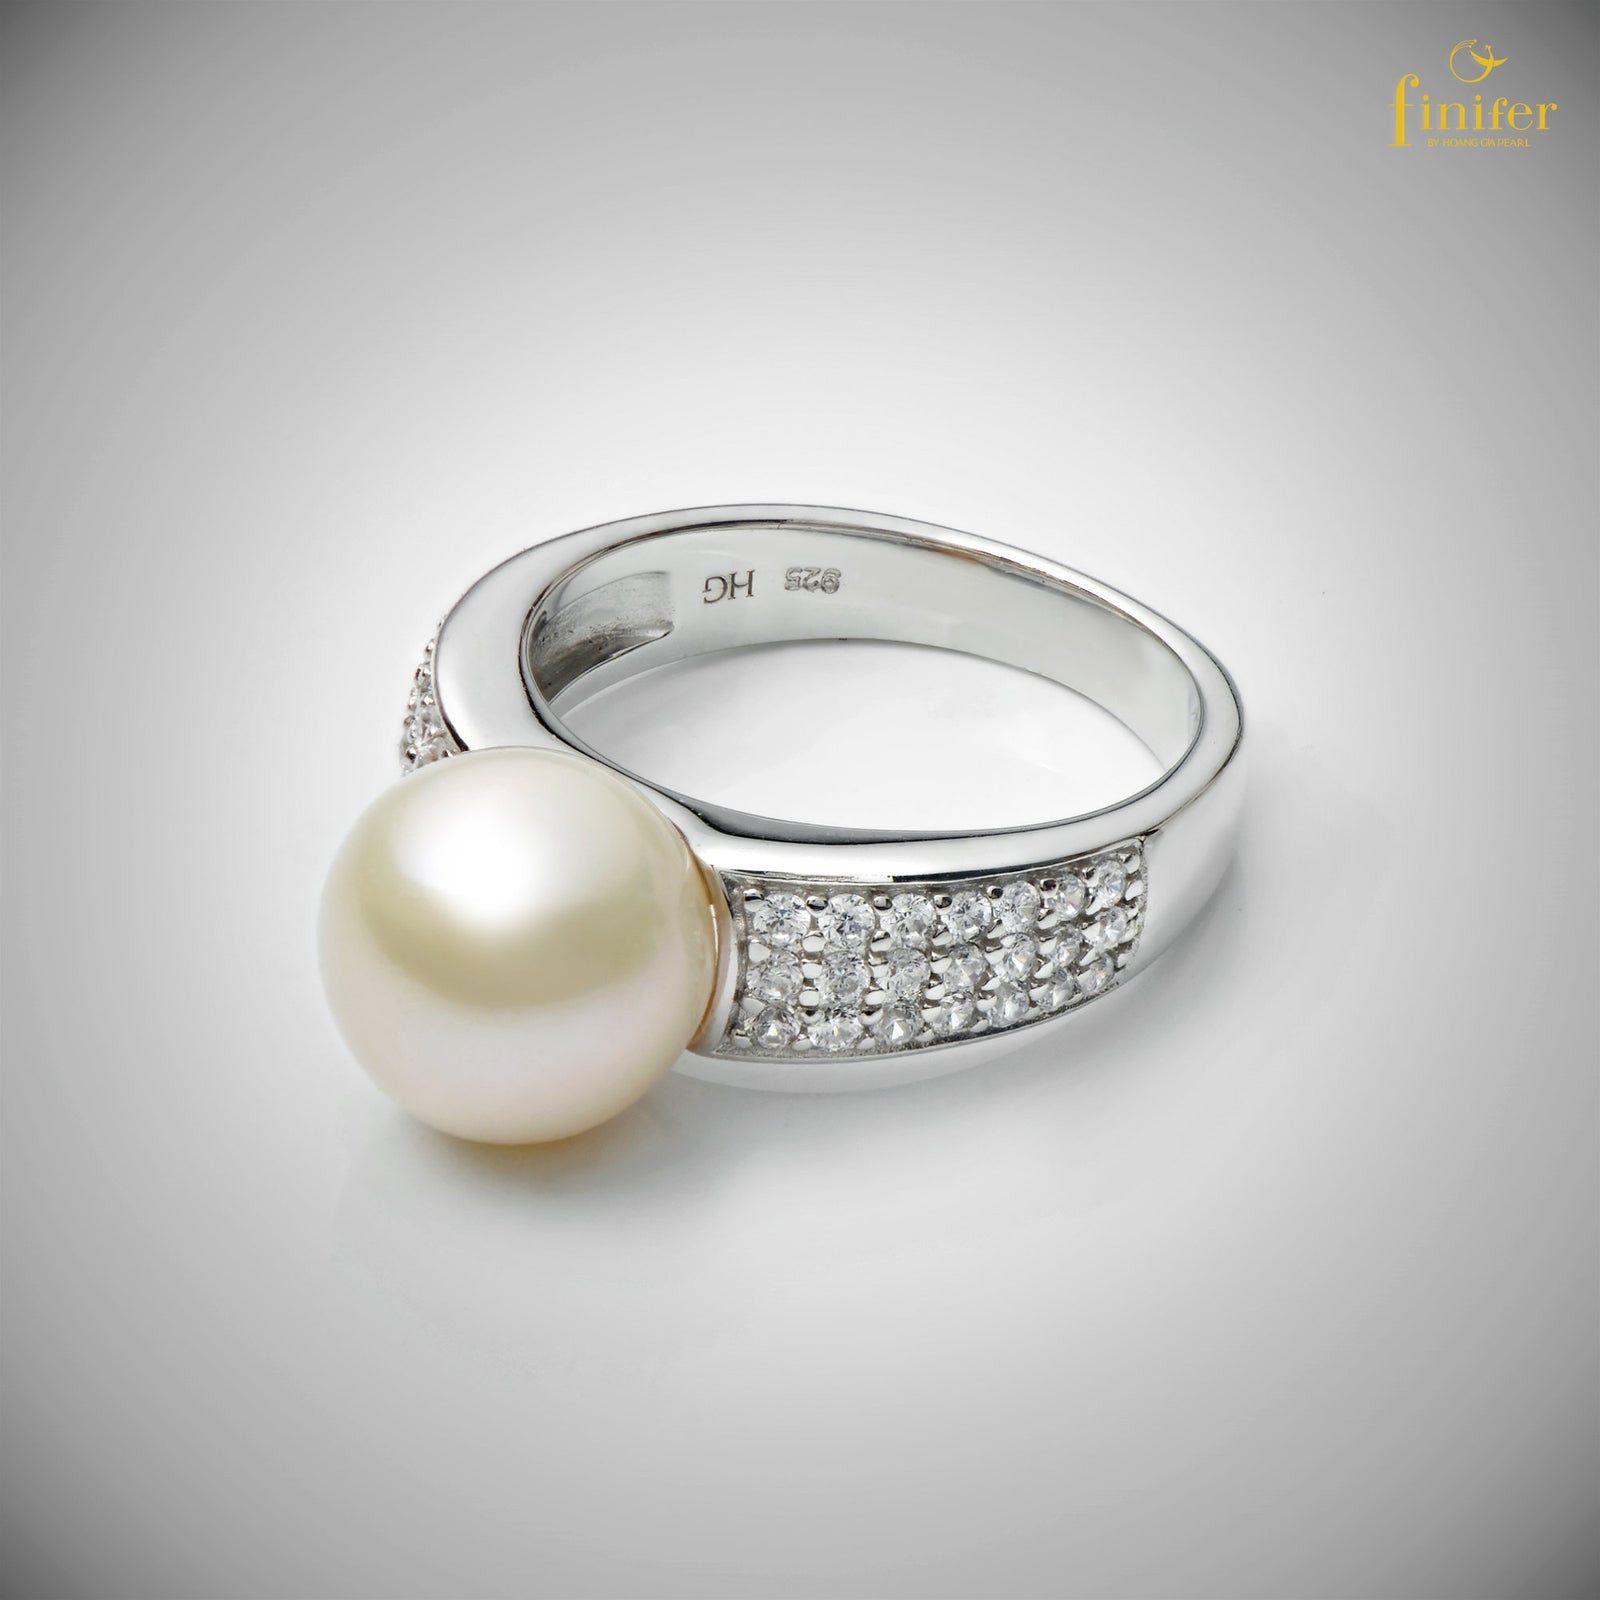 Bride Pearl Wedding Ring Fin R0161 Finifer Pearls And Jewelry